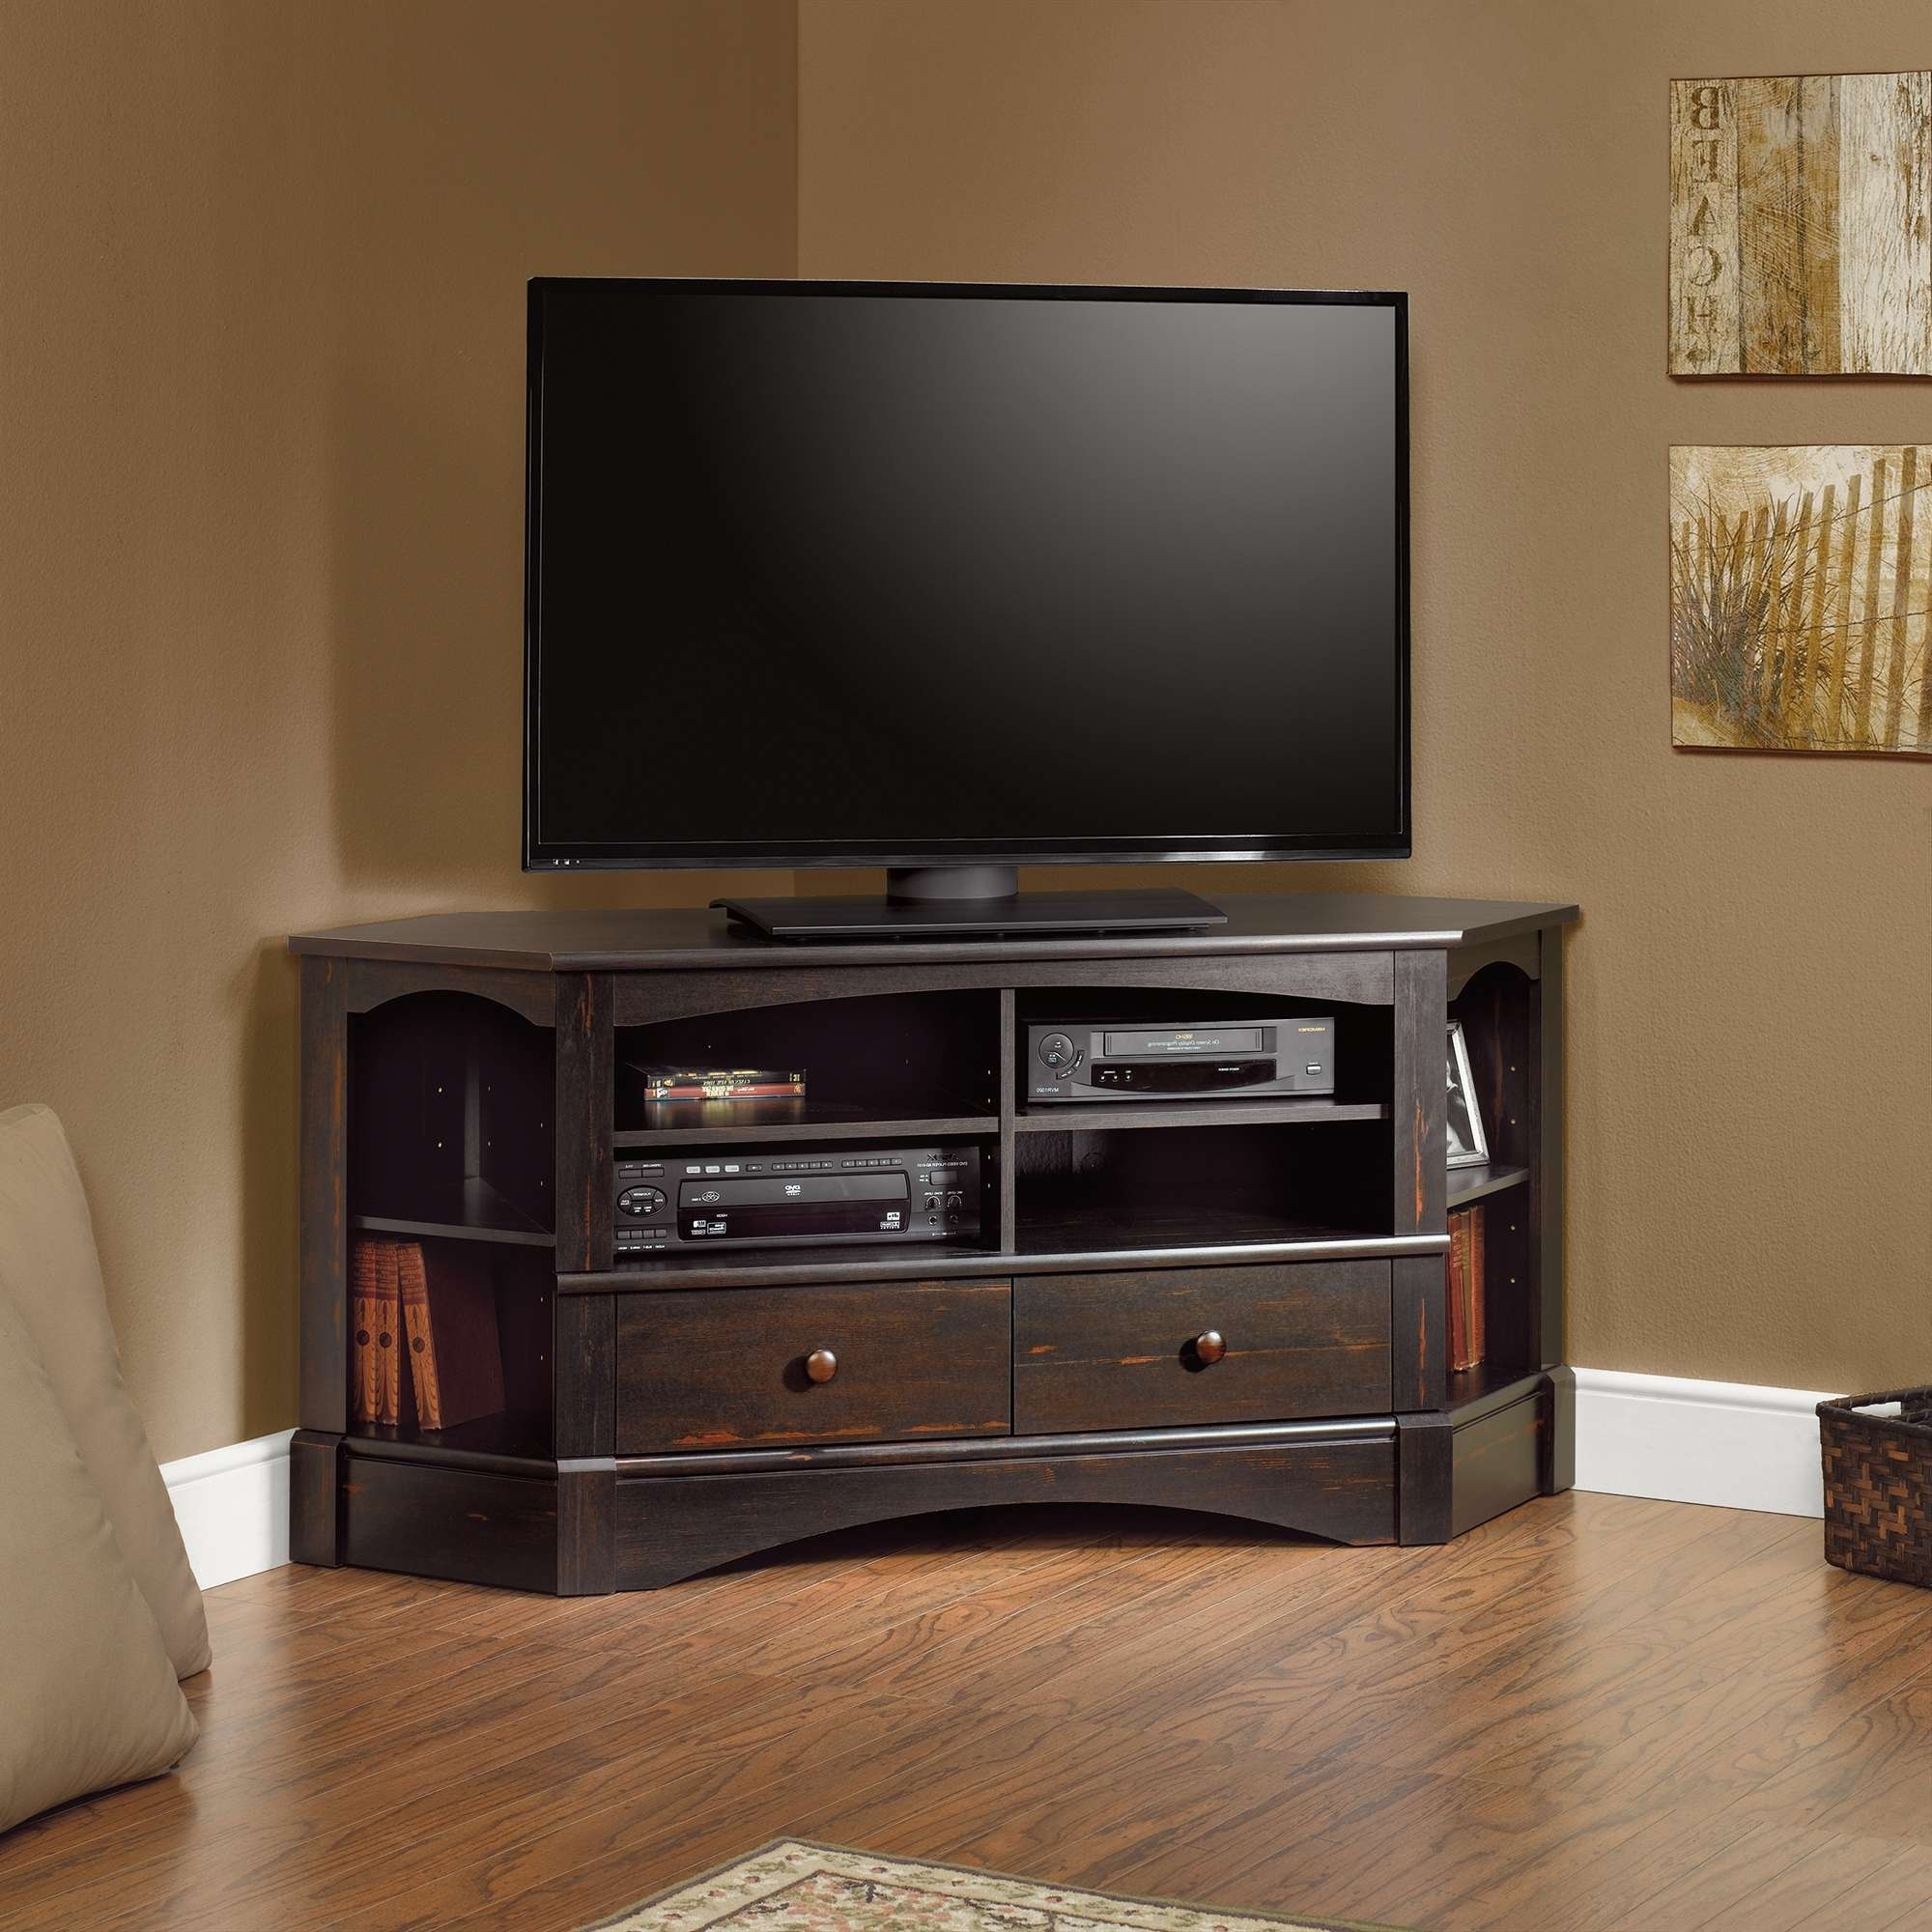 Harbor View | Corner Entertainment Credenza | 402902 | Sauder Within Painted Corner Tv Cabinets (View 19 of 20)